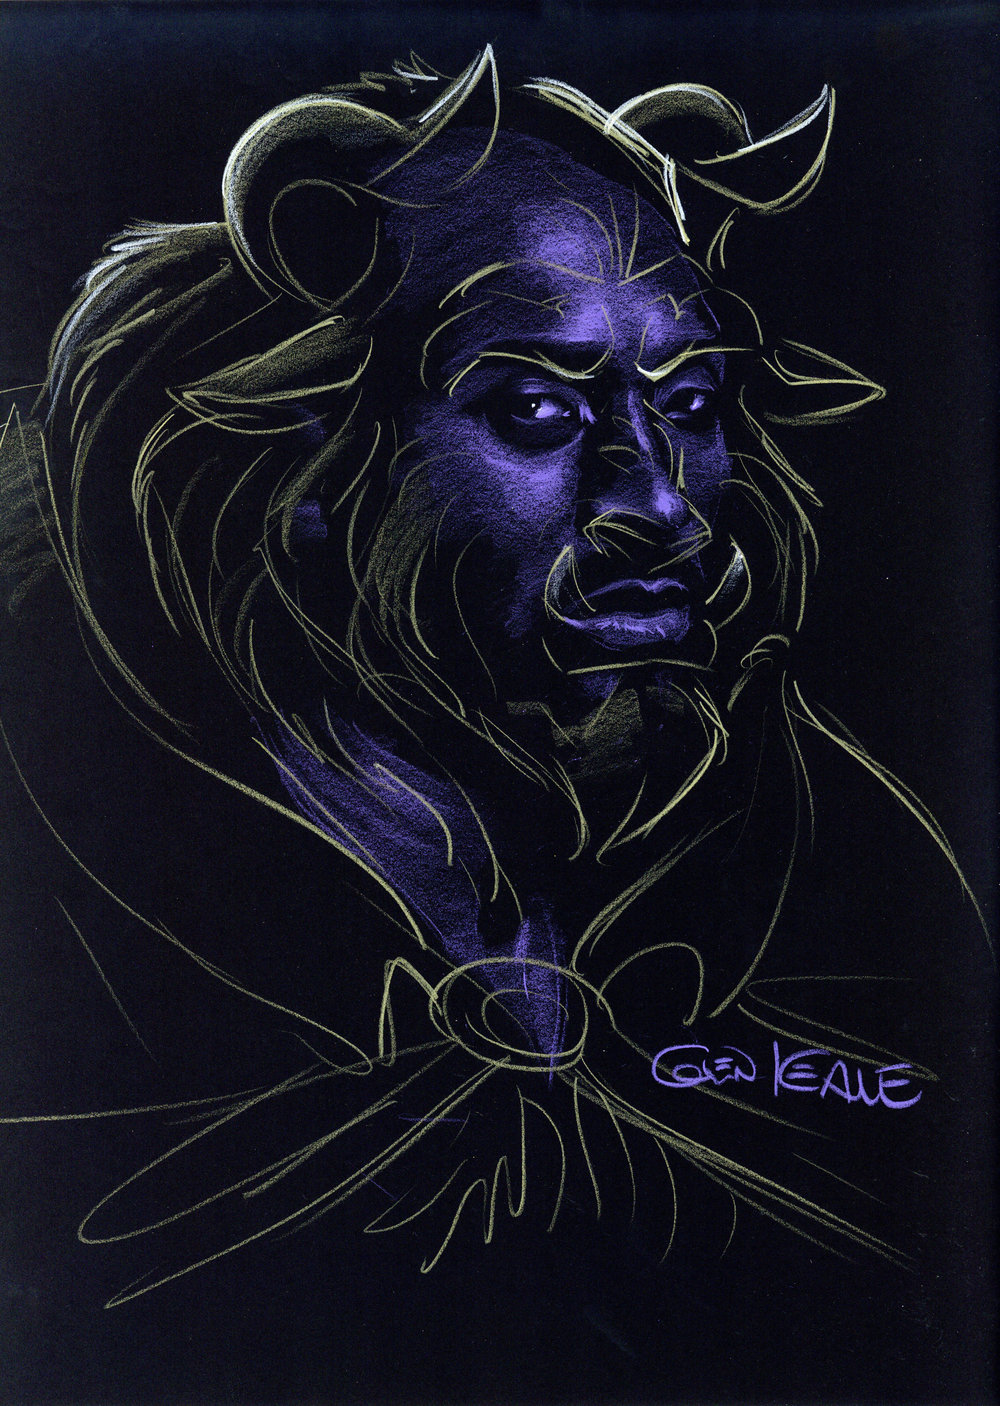 Kobe Bryant  | Photographed by Ian Morrison | Illustrated as  Beast  by Glen Keane